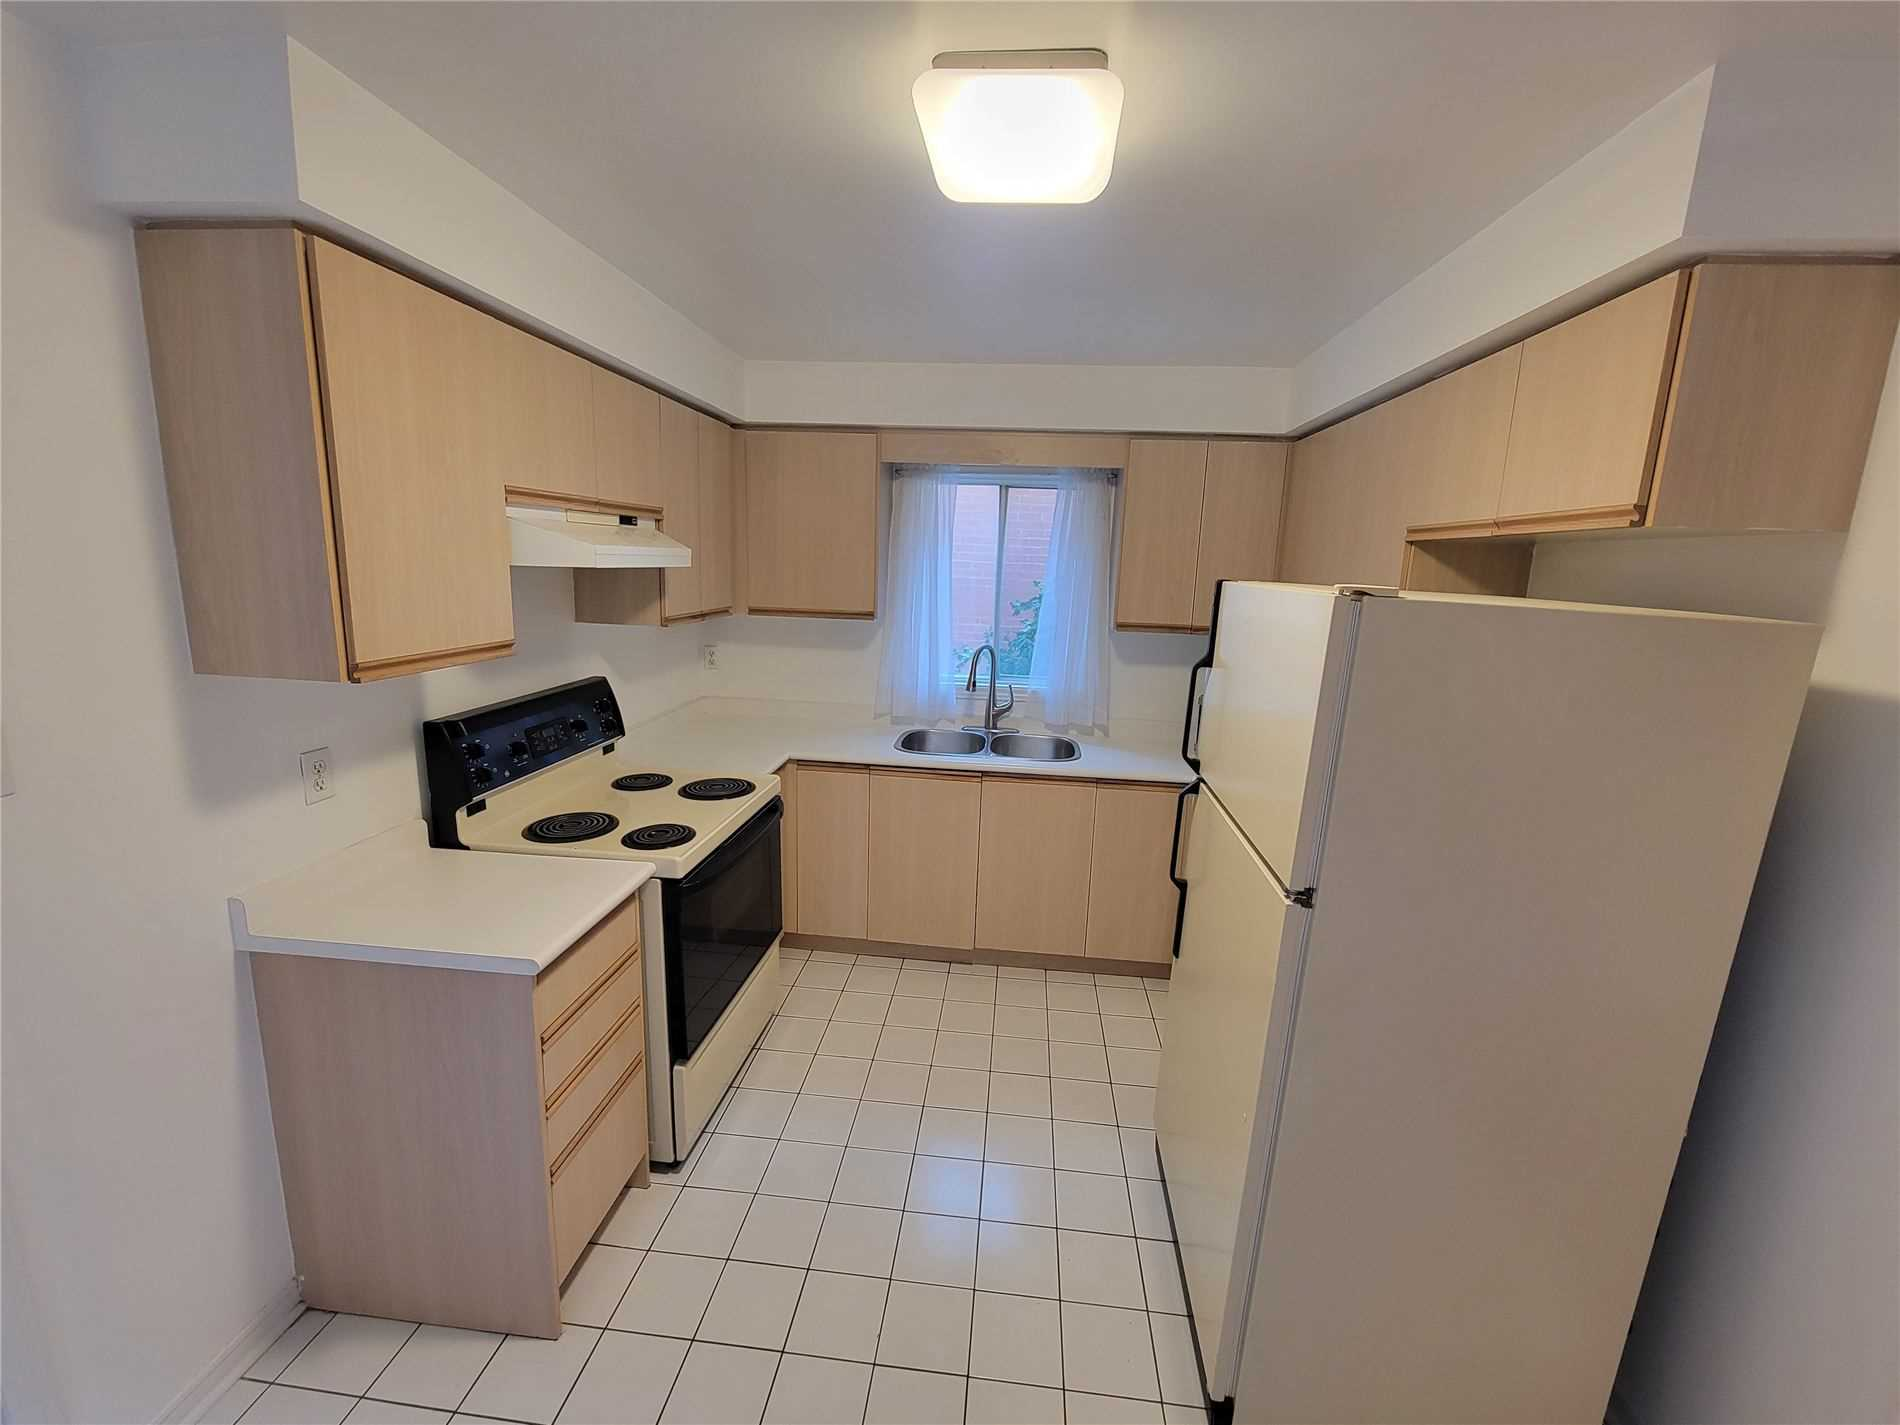 Detached house For Lease In Mississauga - 2912 Gulfstream Way, Mississauga, Ontario, Canada L5N6J9 , 3 Bedrooms Bedrooms, ,2 BathroomsBathrooms,Detached,For Lease,Gulfstream